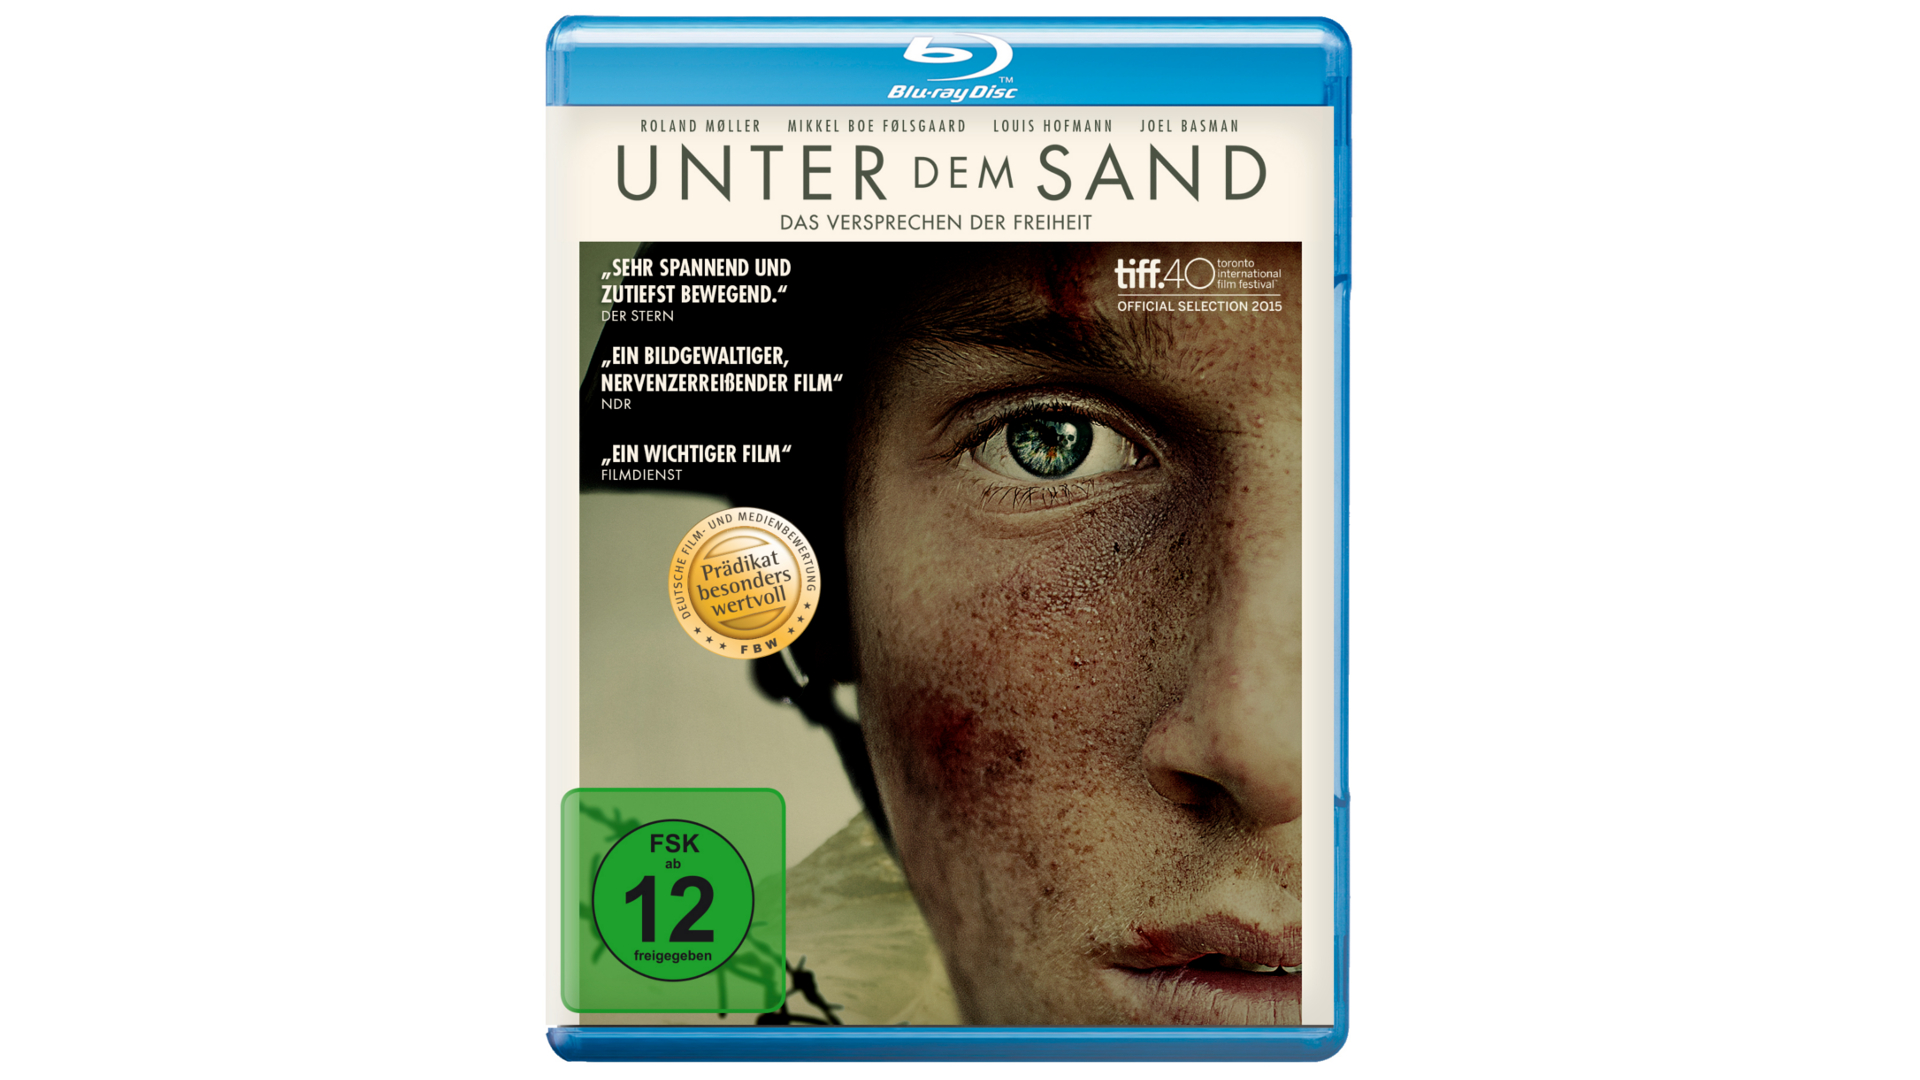 Blu-ray Film Review: Unter dem Sand